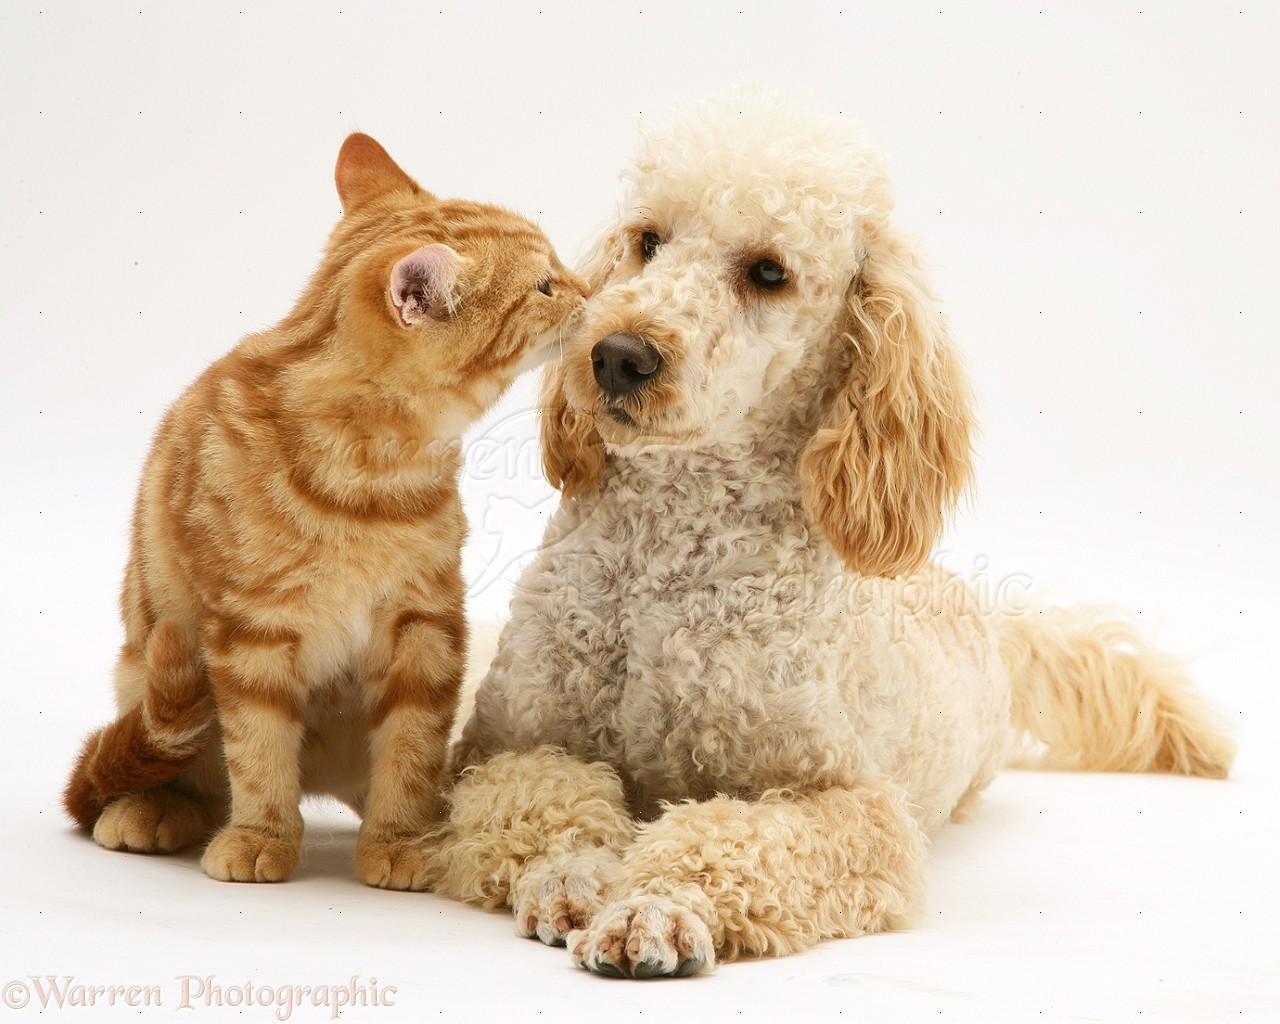 Pets: Apricot Poodle with ginger cat photo - WP17955